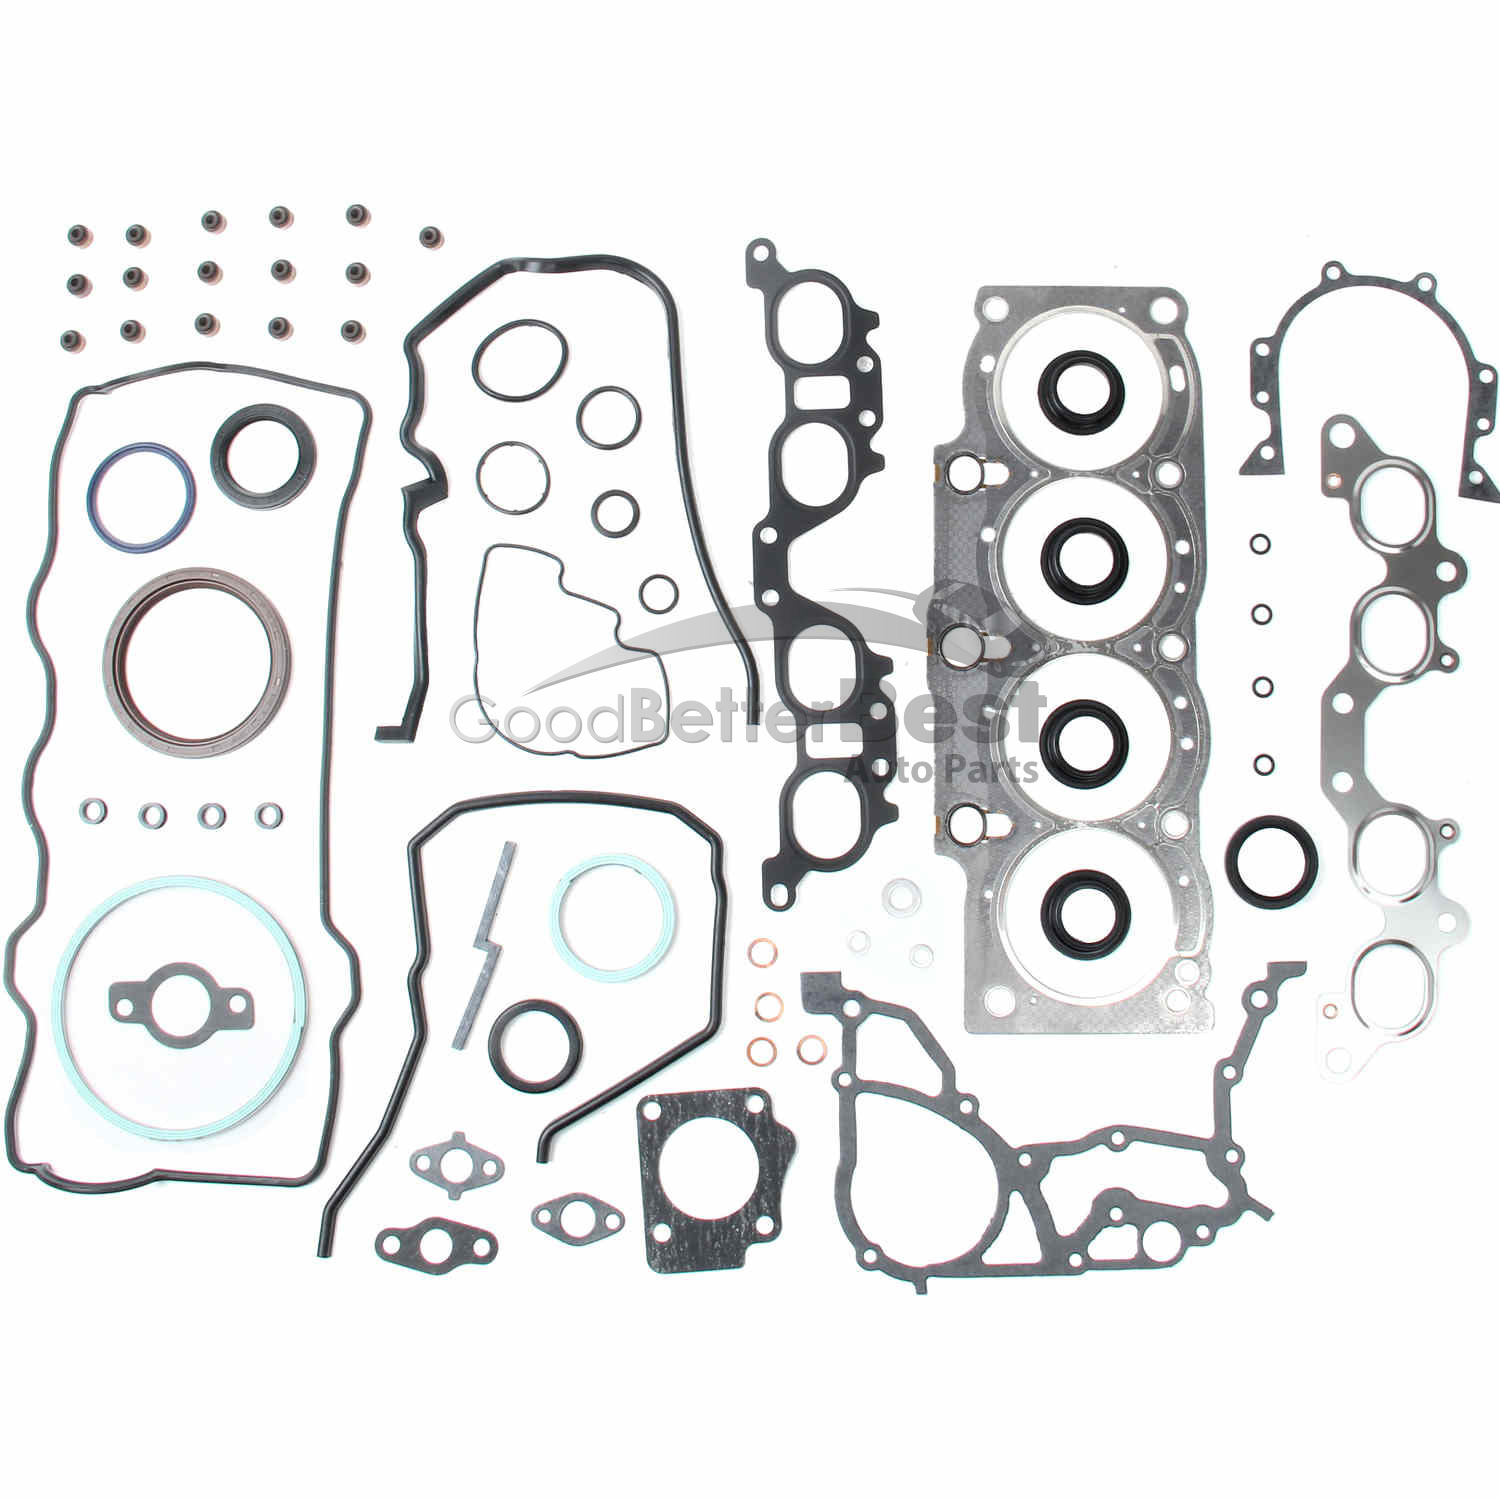 New Stone Engine Gasket Set Jfs Us Toyota Camry